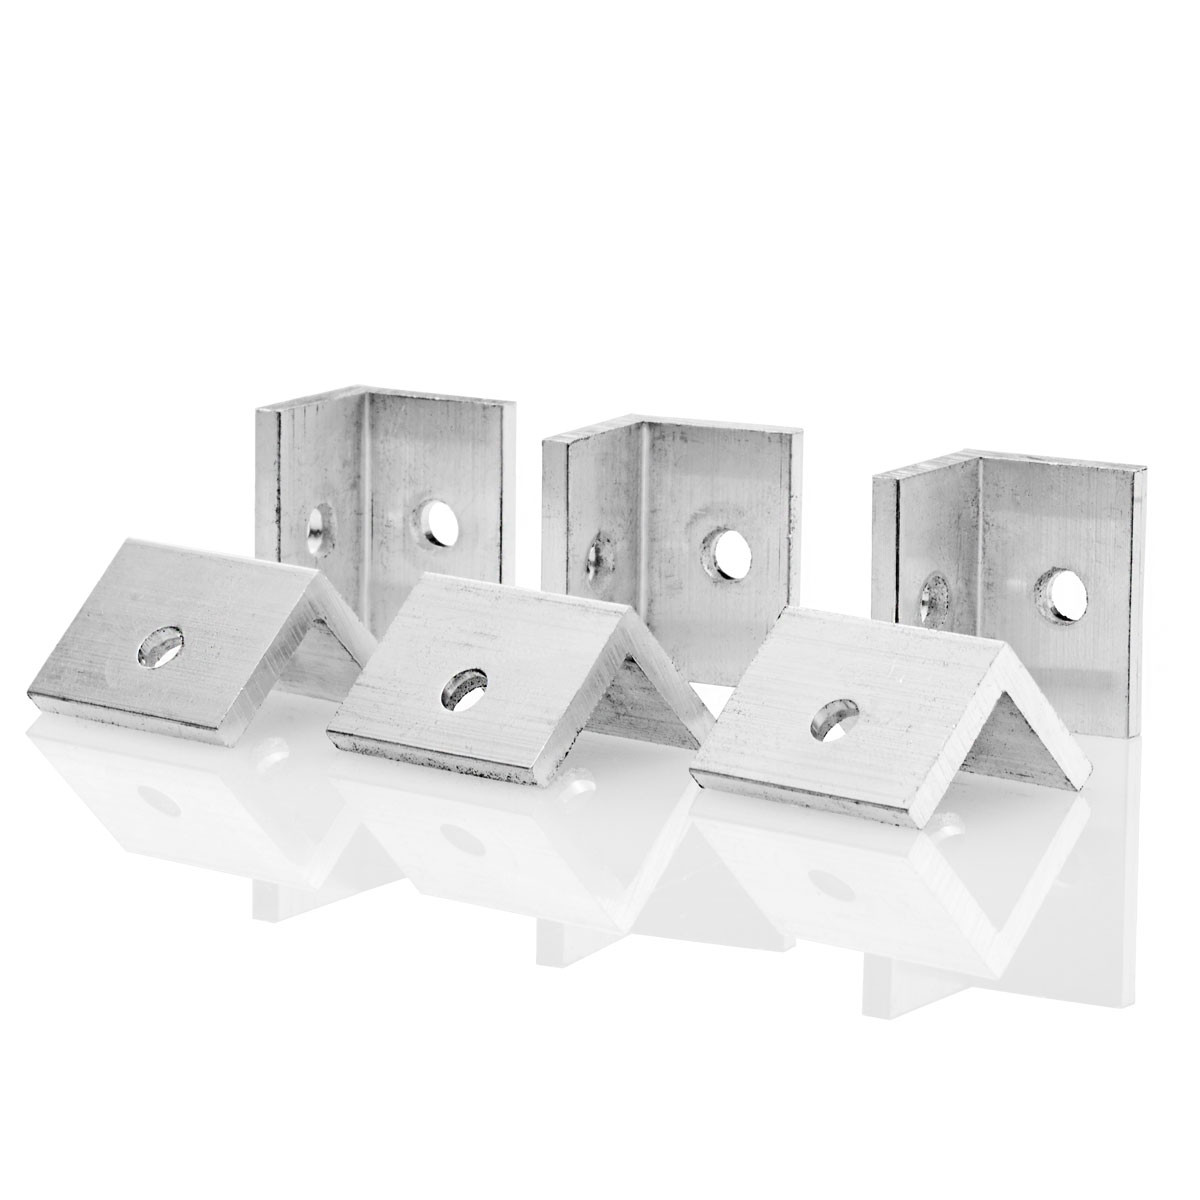 AFCO Column Hold Down Clips